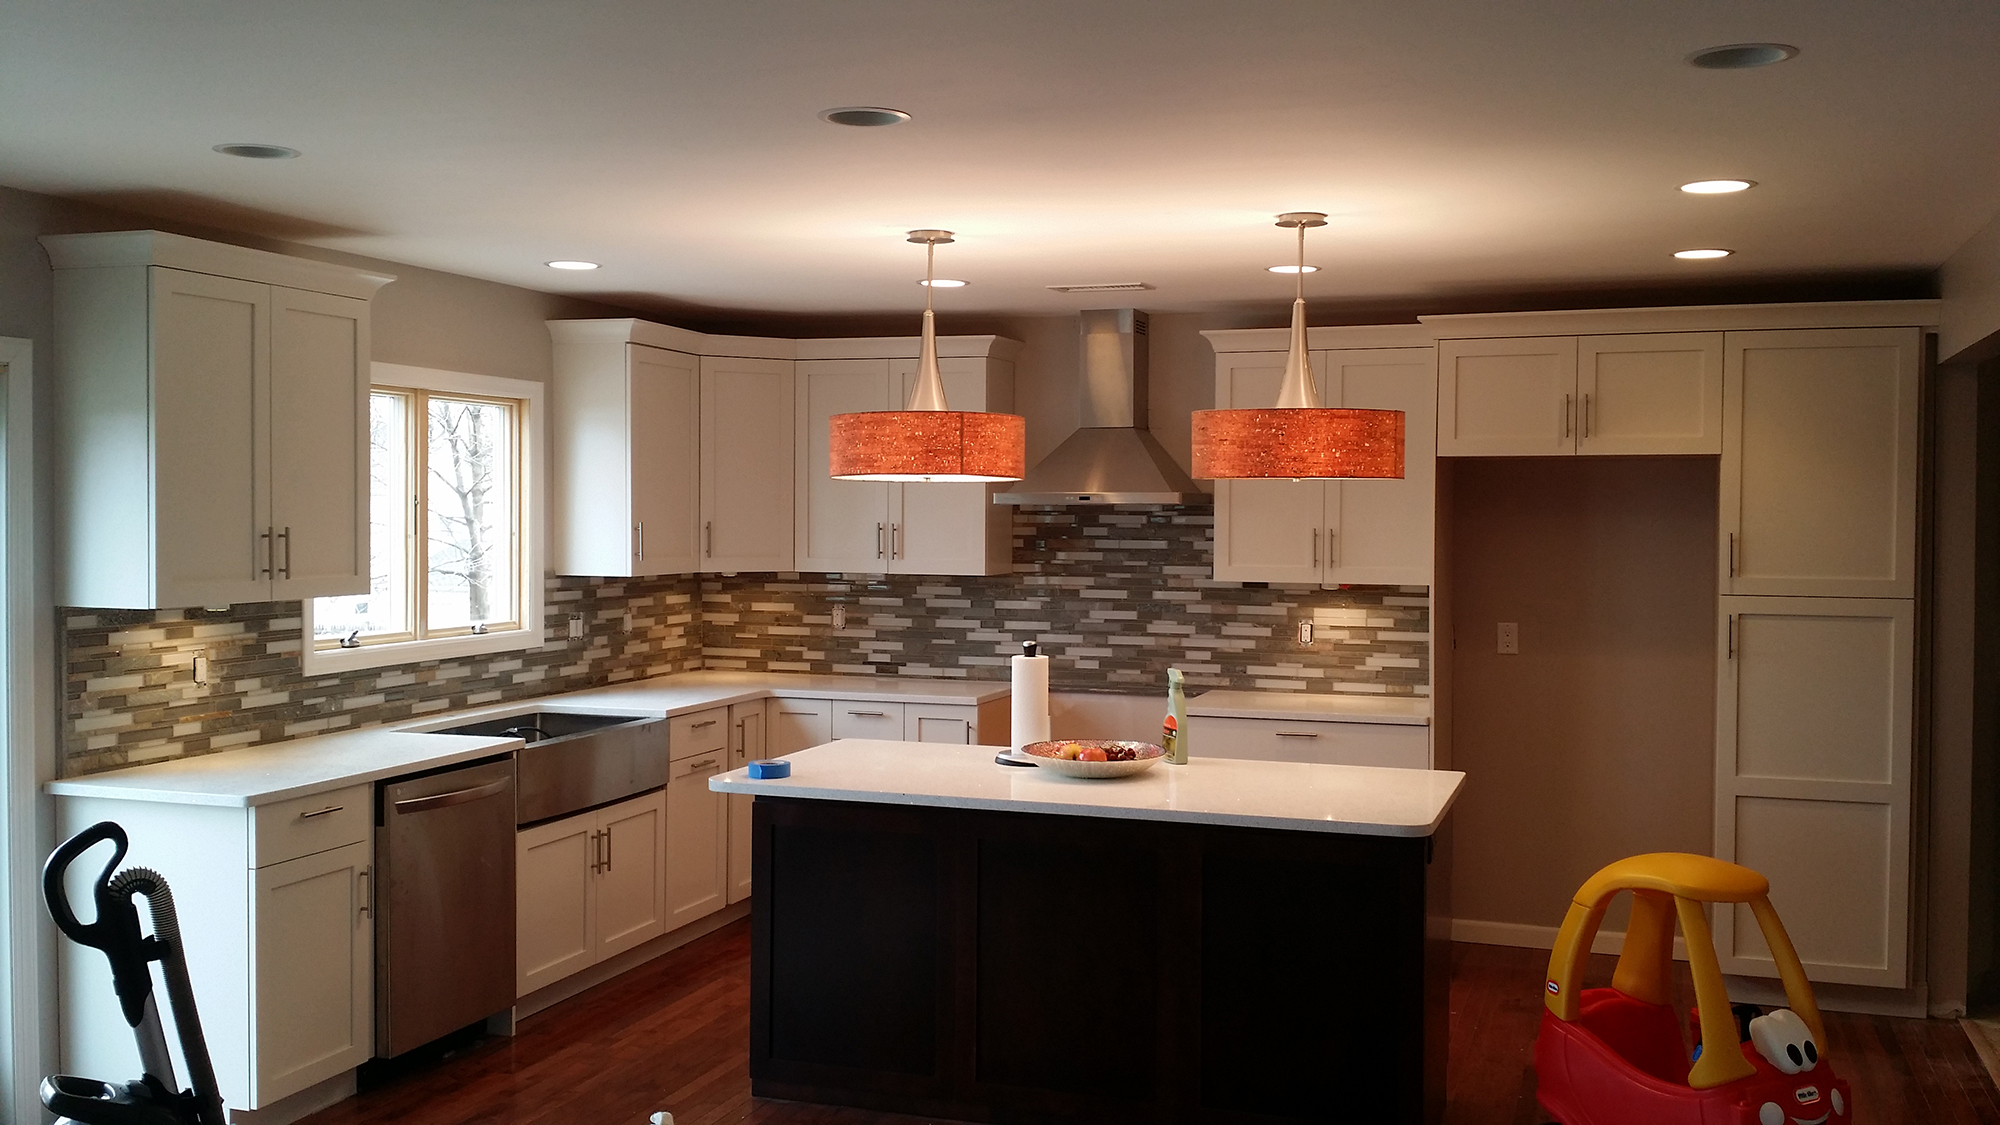 Kitchen Renovation & Remodeling NJ (862) 668-9269